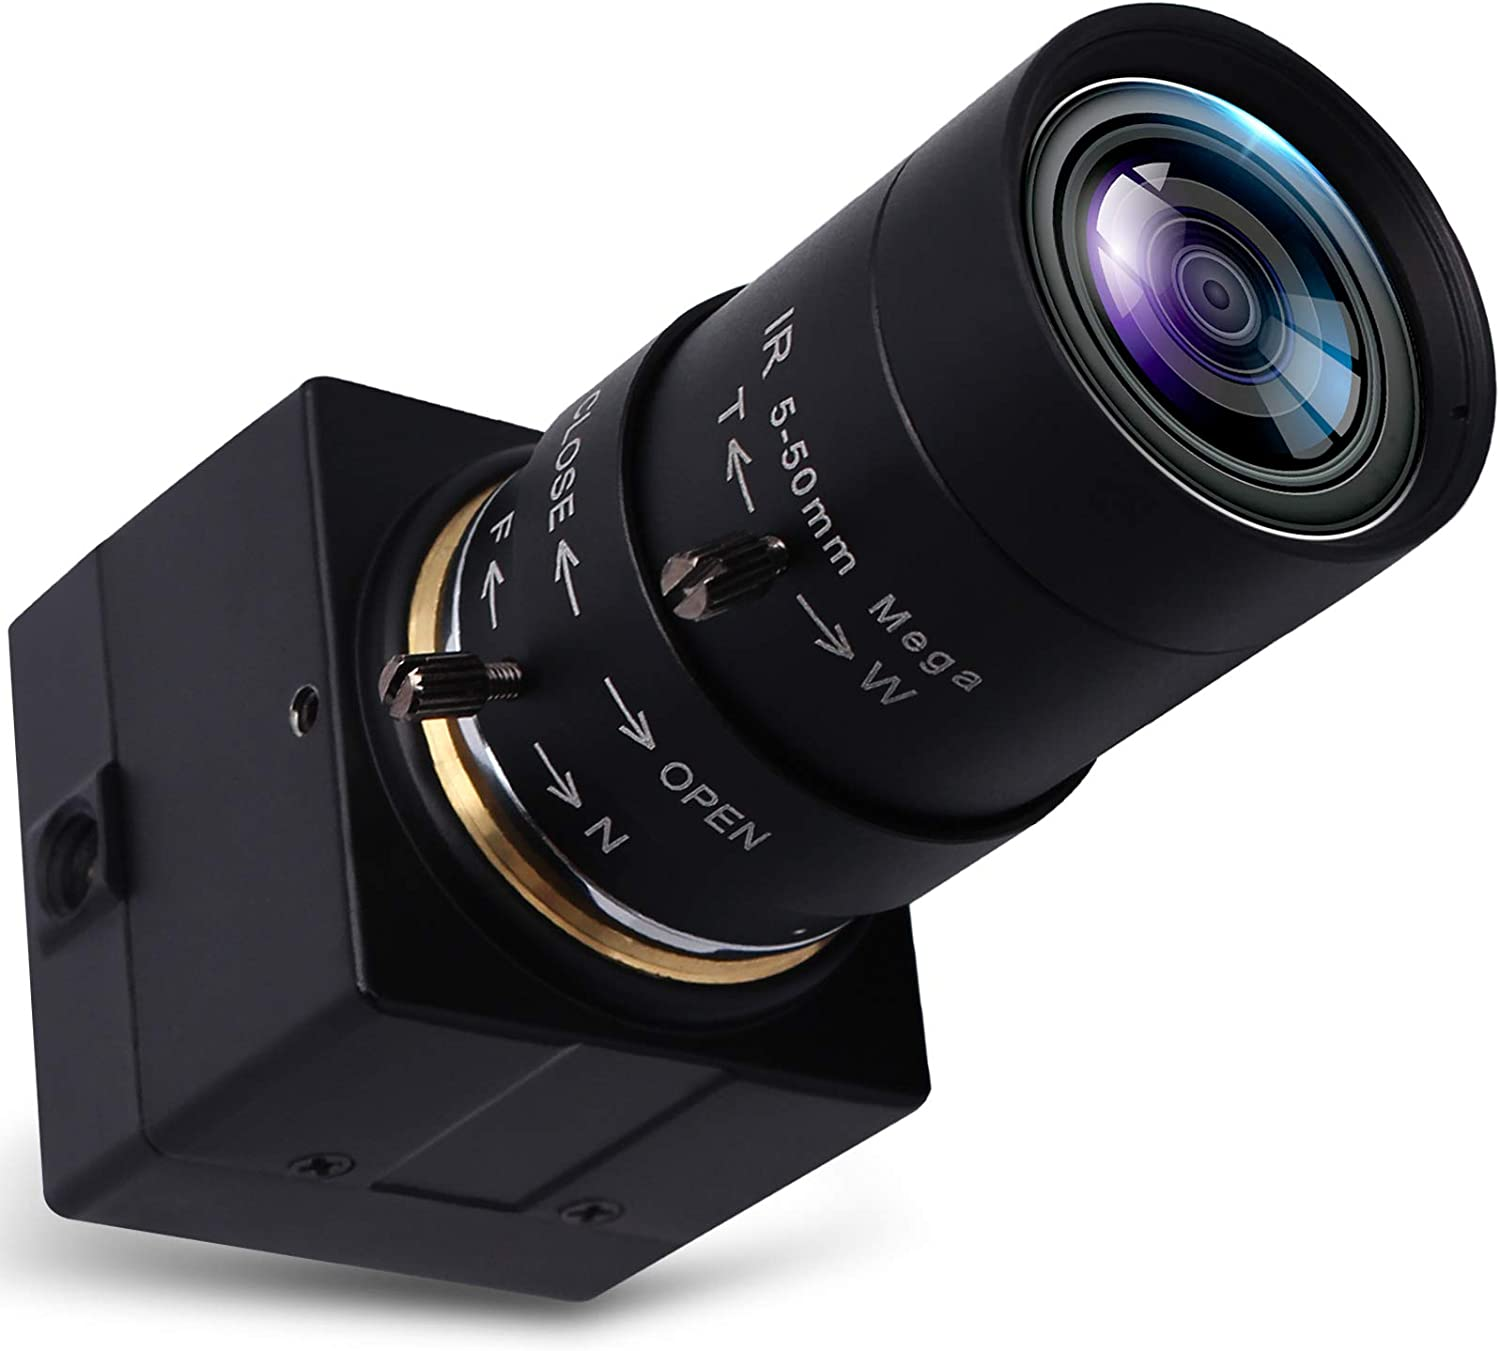 SVPRO Telephoto Webcam Mac Compatible 1MP USB Camera with 5-50mm Optical Zoom Lens Manual Focus Webcam UVC PC Cam for Windows Linux Android MAC,1280x720 USB2.0 CMOS Video Camera for Security,Streaming